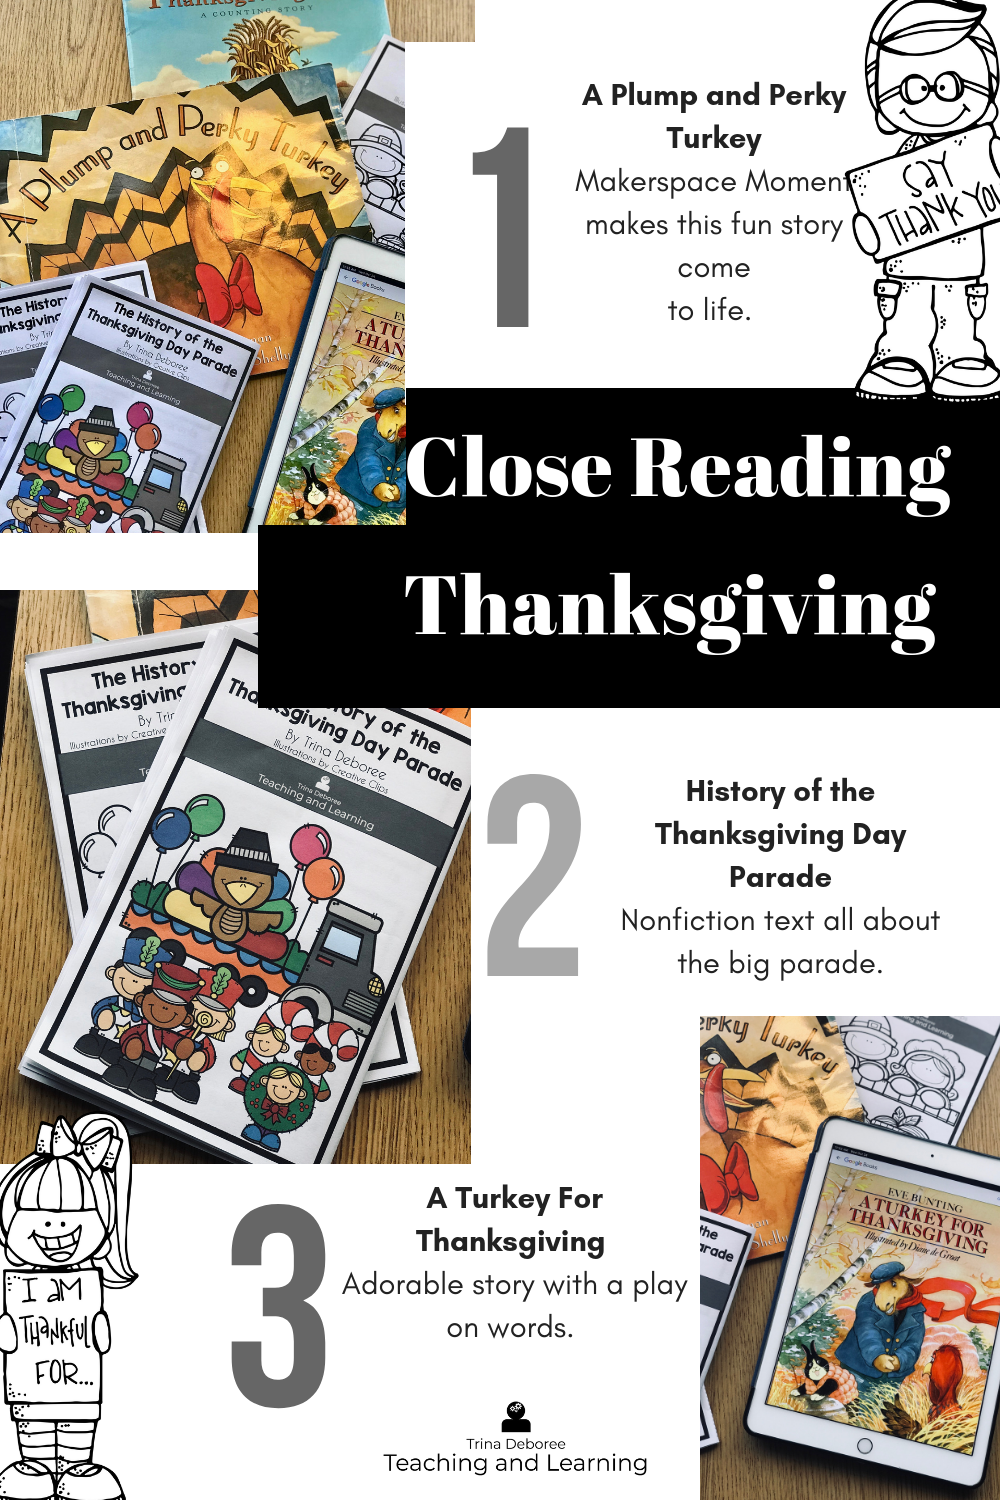 7 Excellent Thanksgiving Books Every Kid Will Love